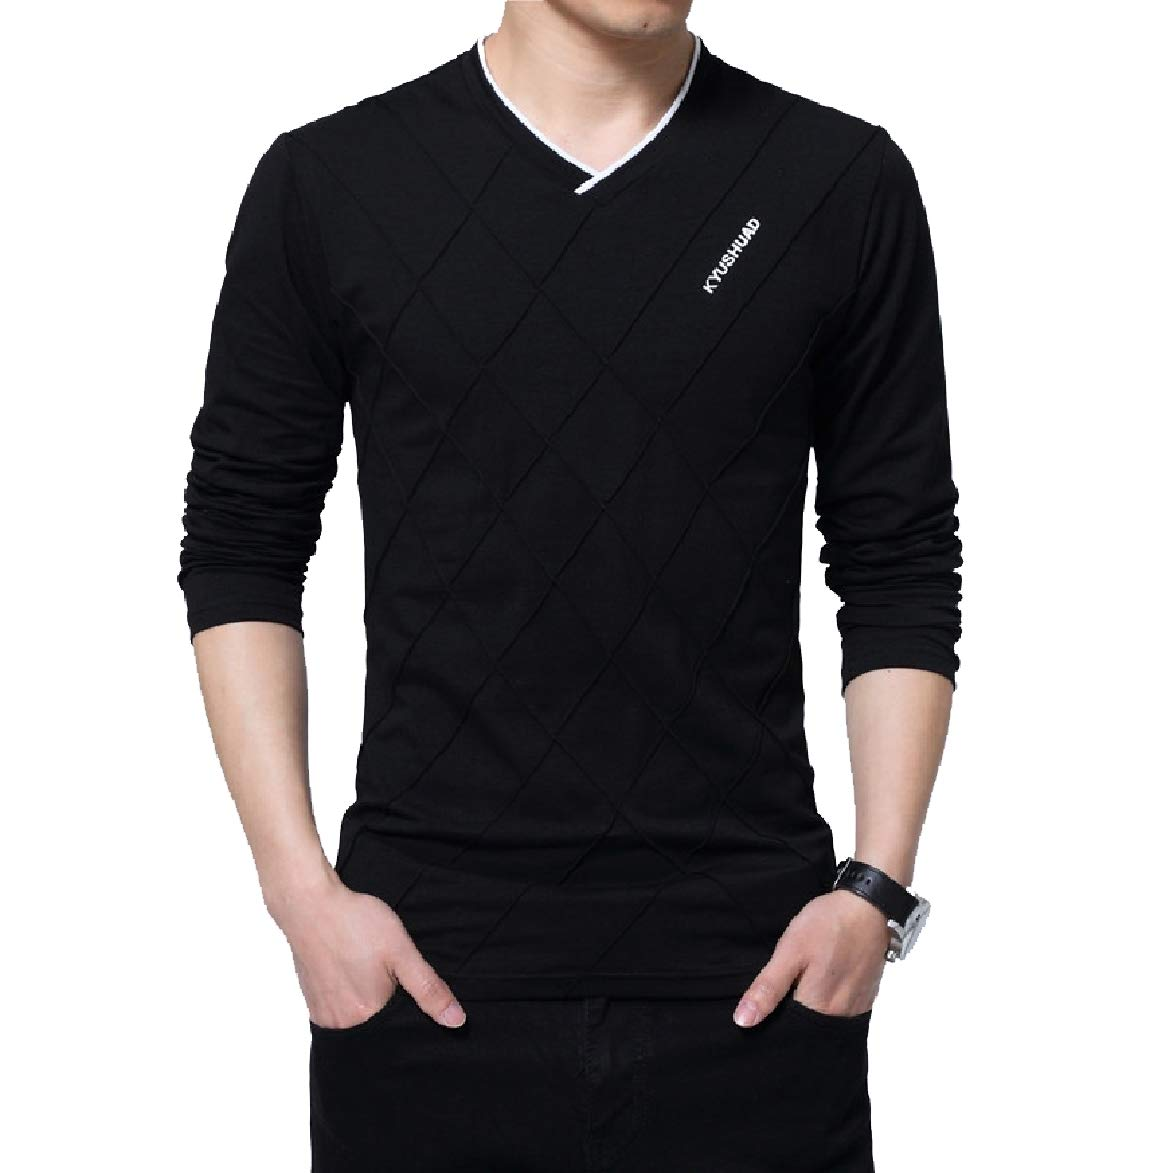 Abetteric Mens V Neck Plus Size Long-Sleeved Printed Solid T-Shirt